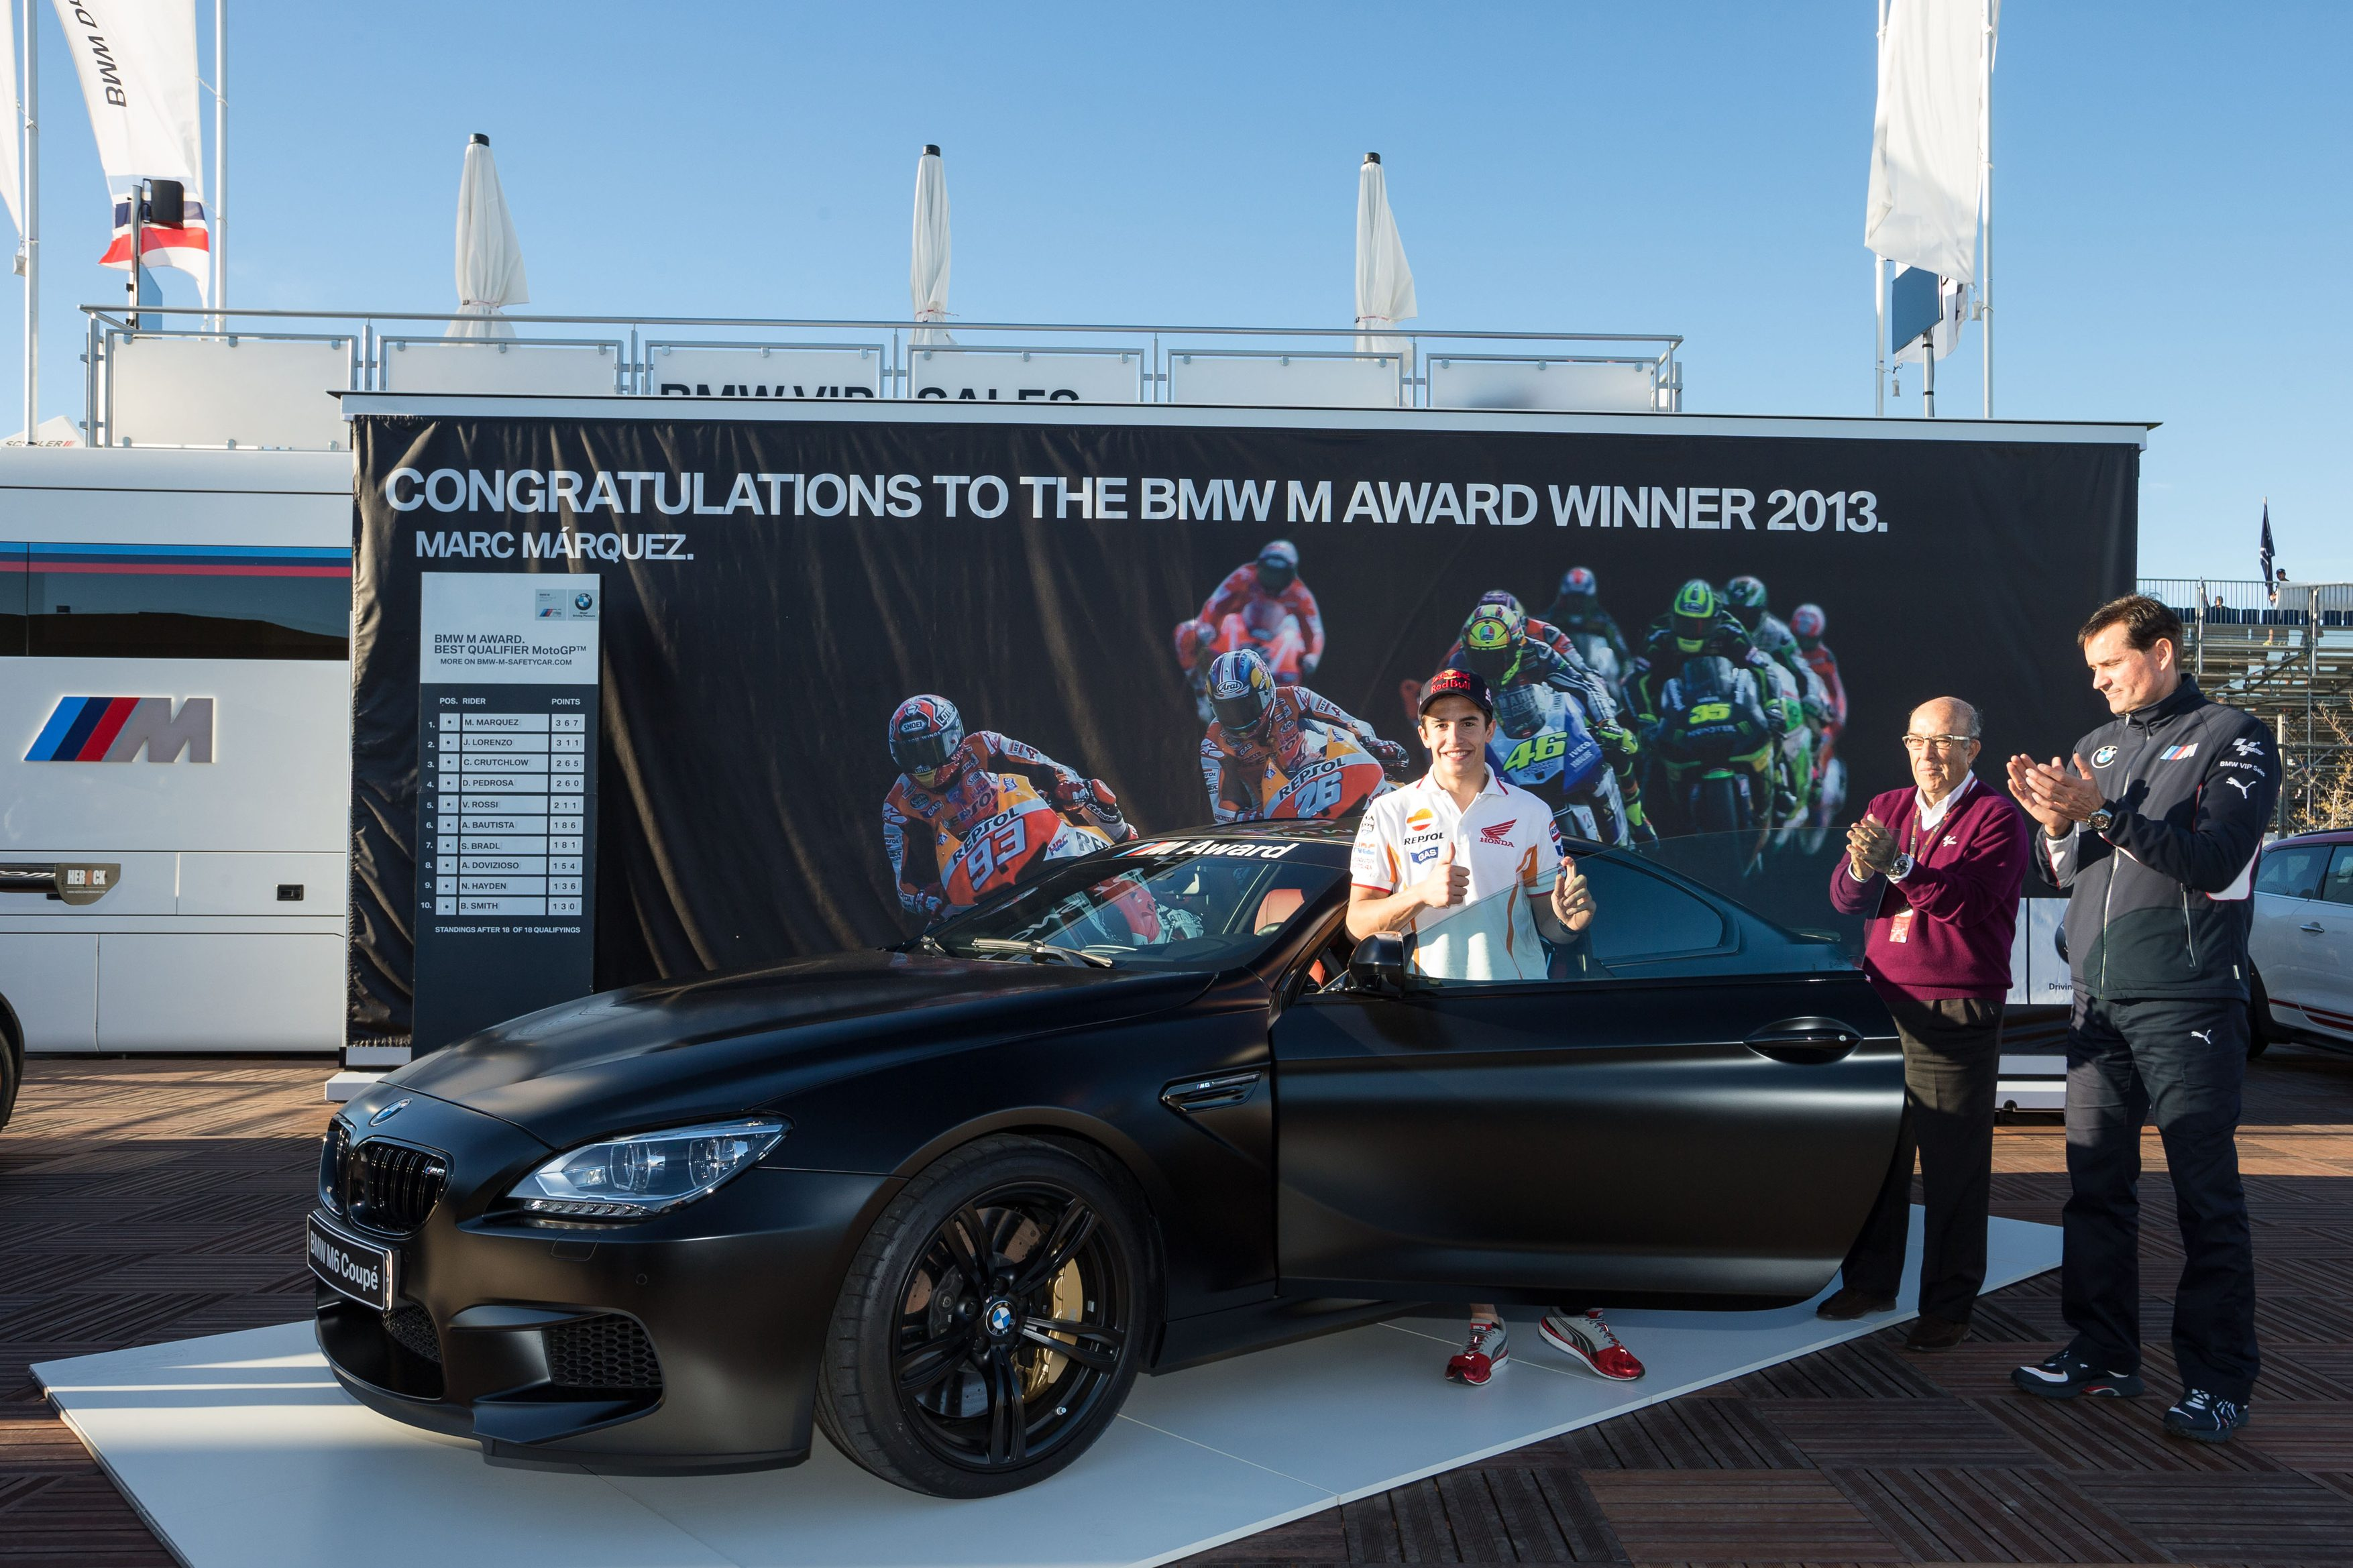 https://www.autoblog.nl/gallery/BMW/0_Divers/M6_voor_Marc_Marquez/P90138771_highRes_bmw-m-award-2013-mar.jpg